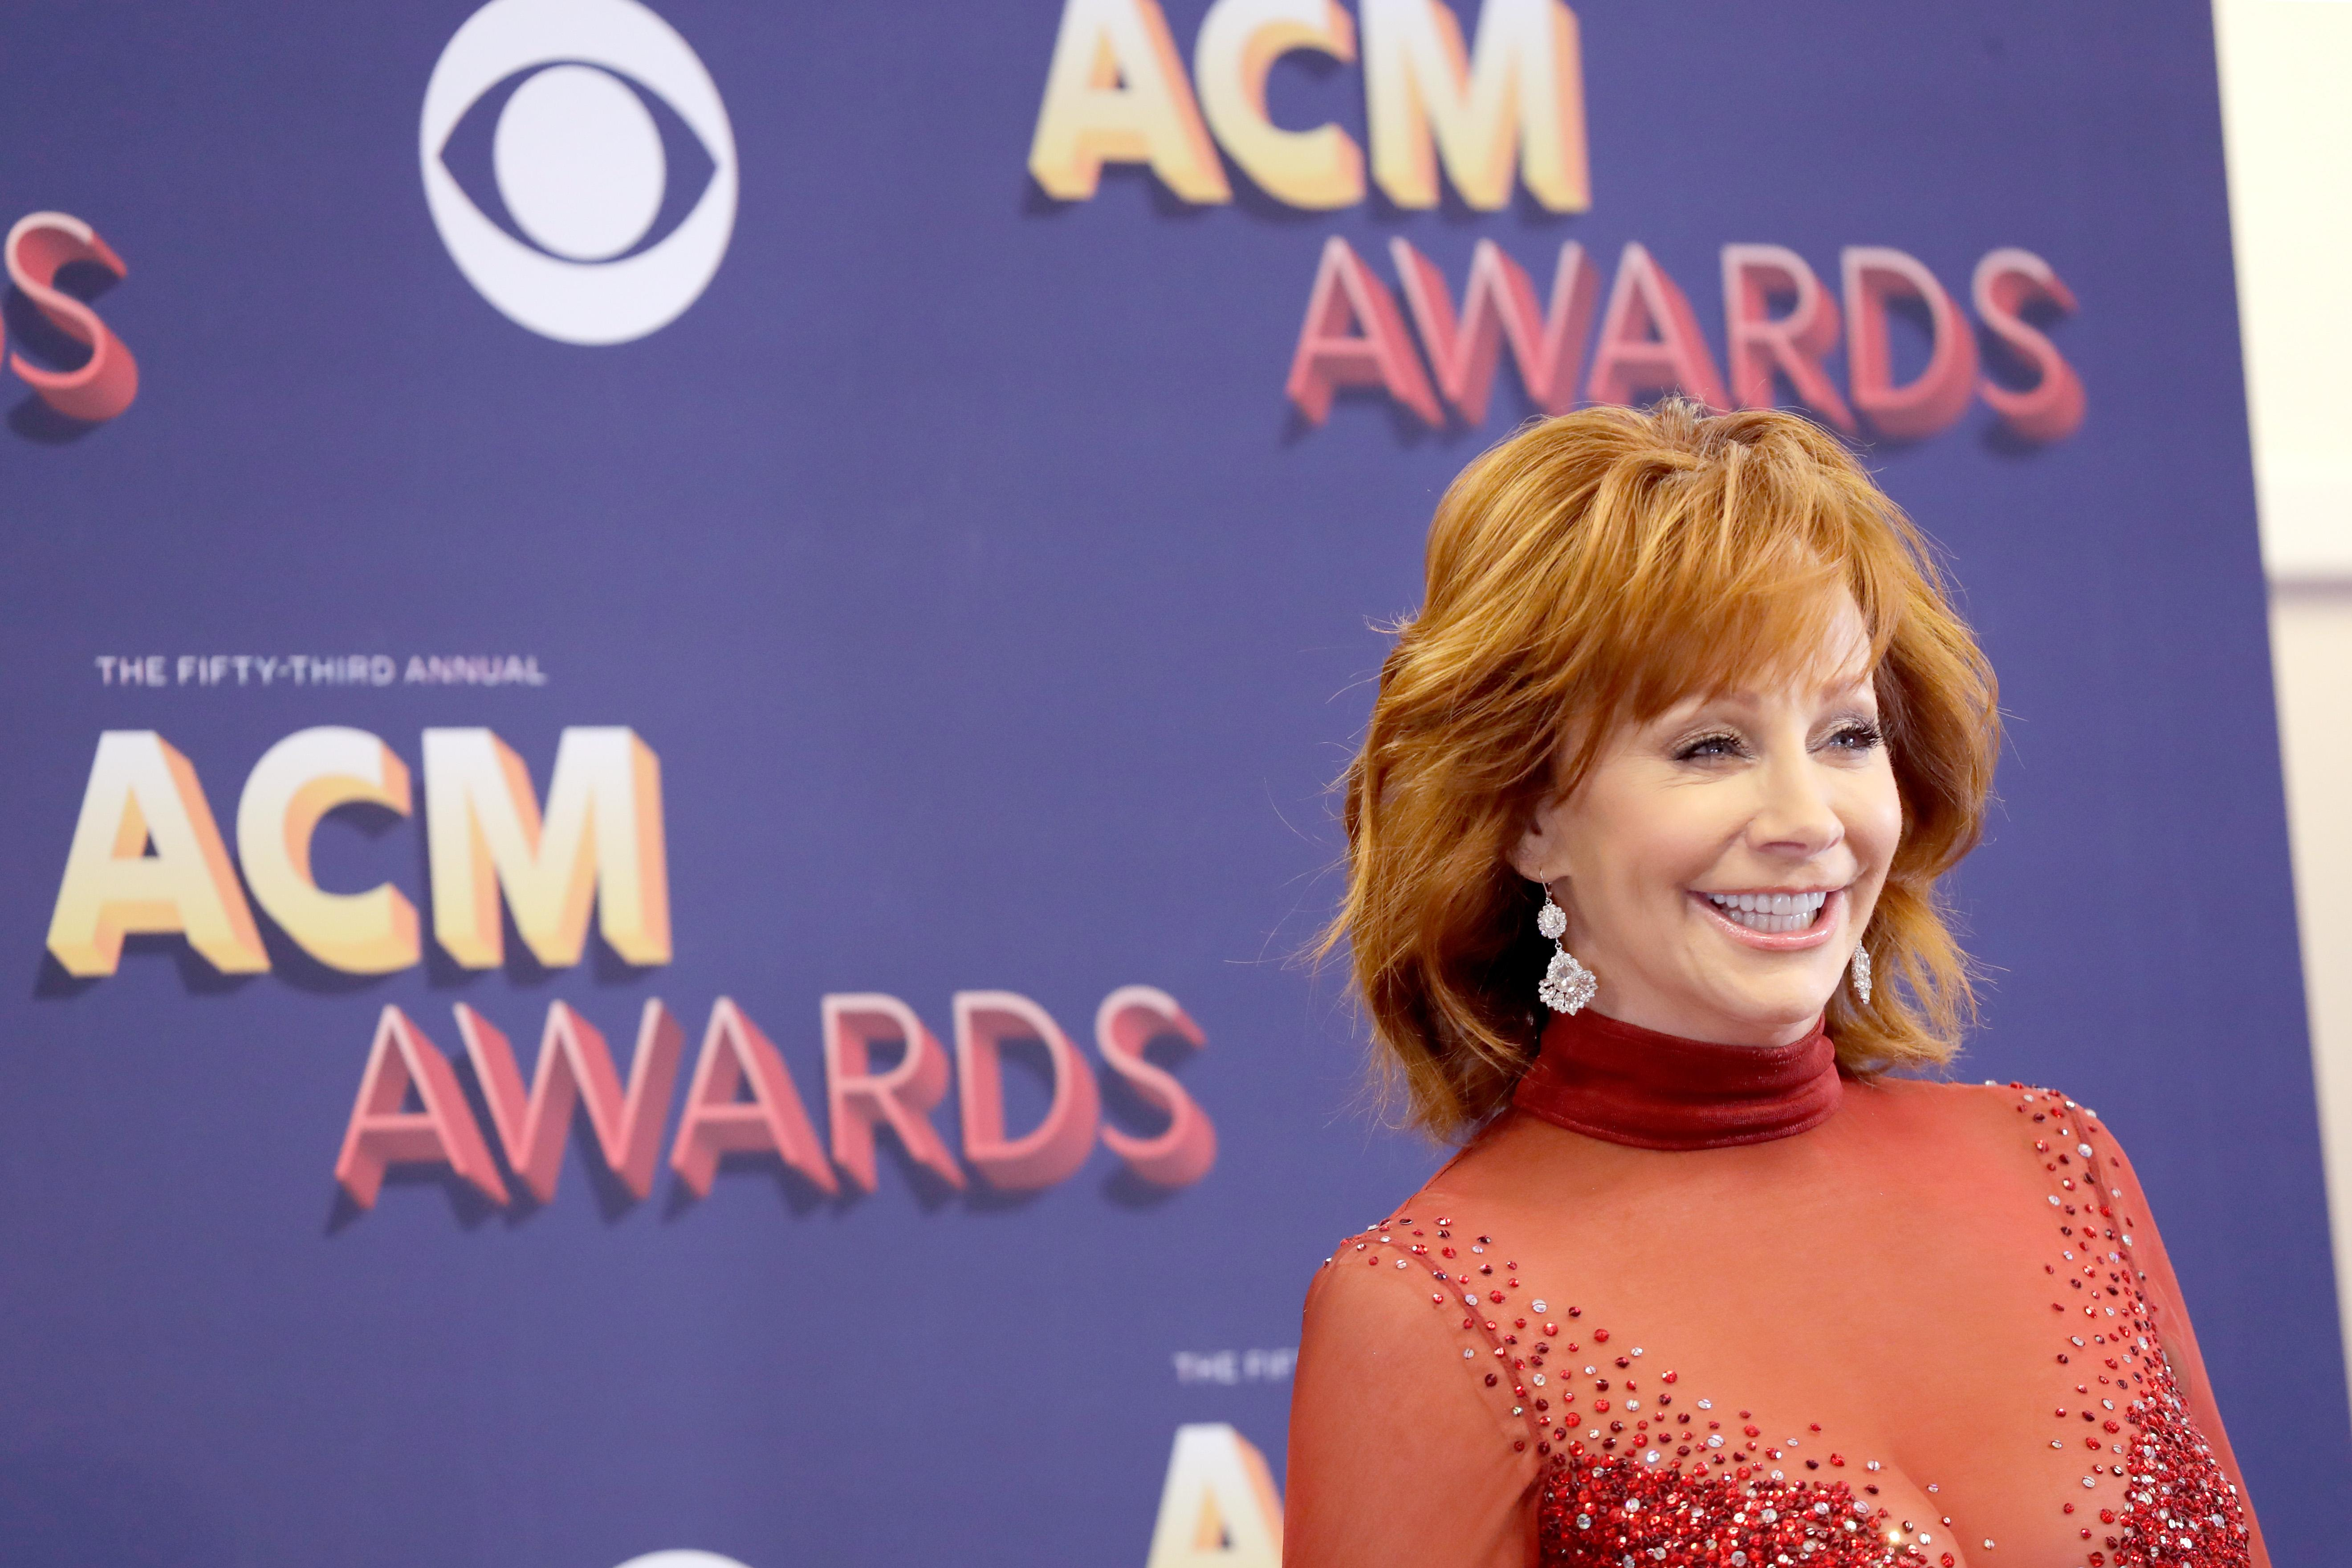 Reba McEntire brings back infamous red dress 25 years later